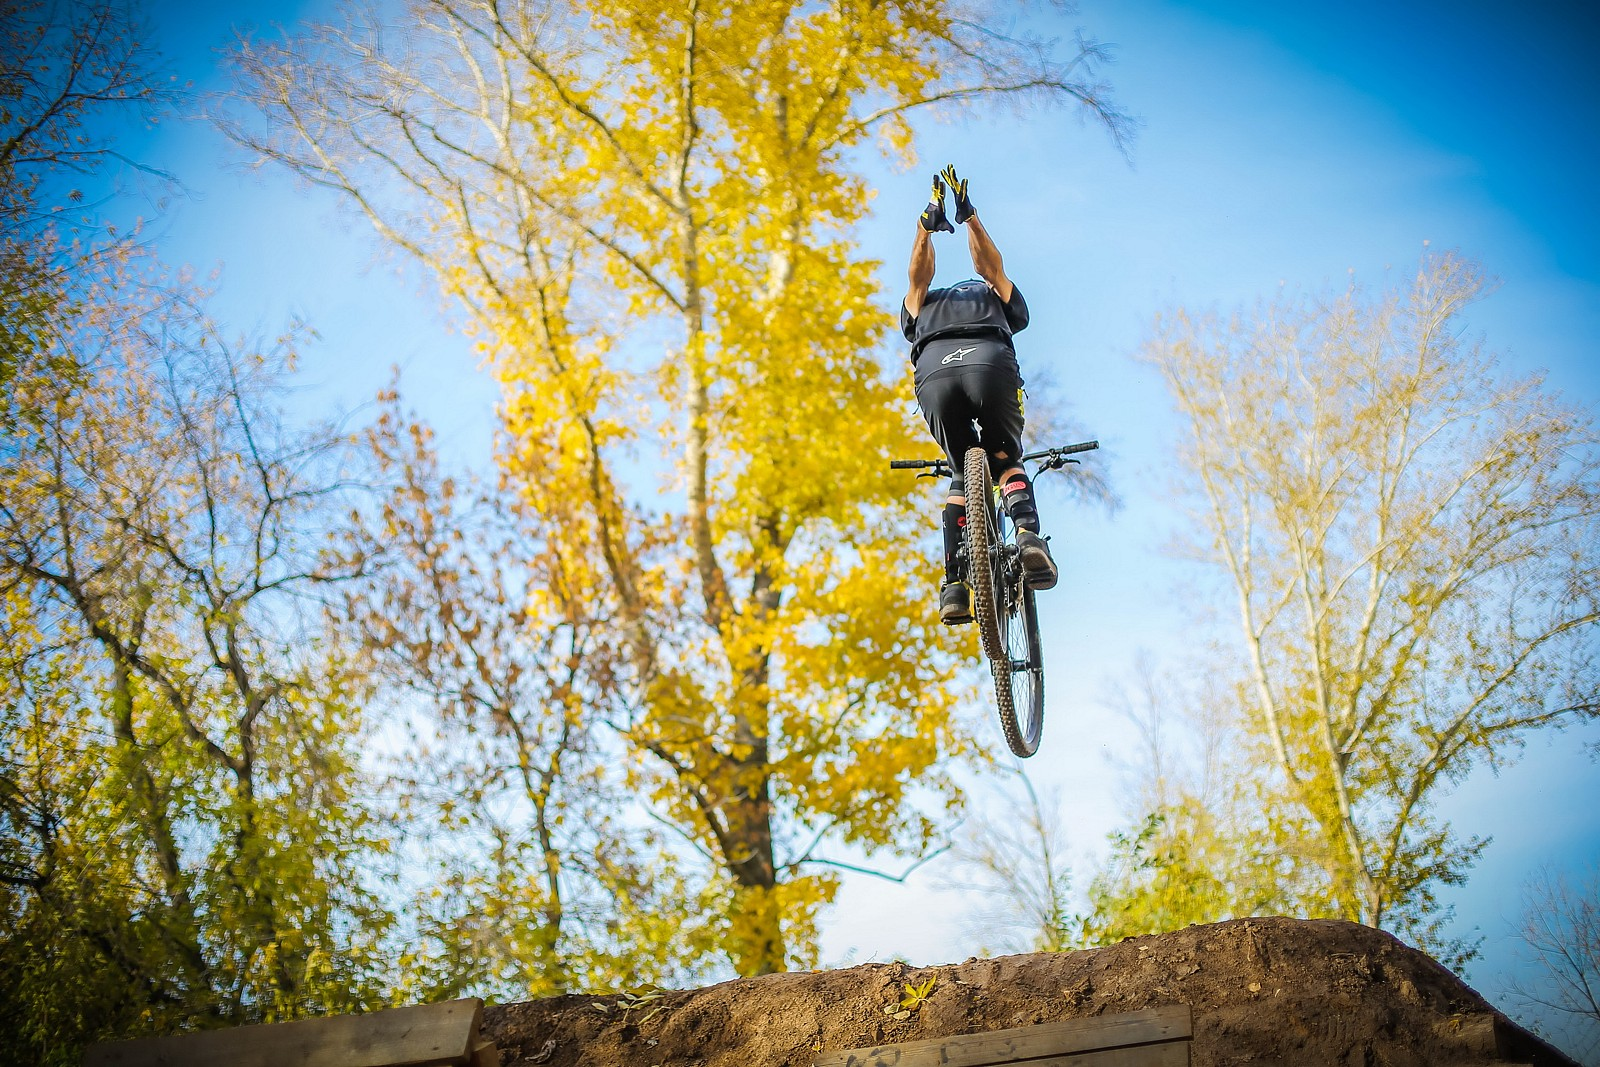 nohander! - YakuT - Mountain Biking Pictures - Vital MTB